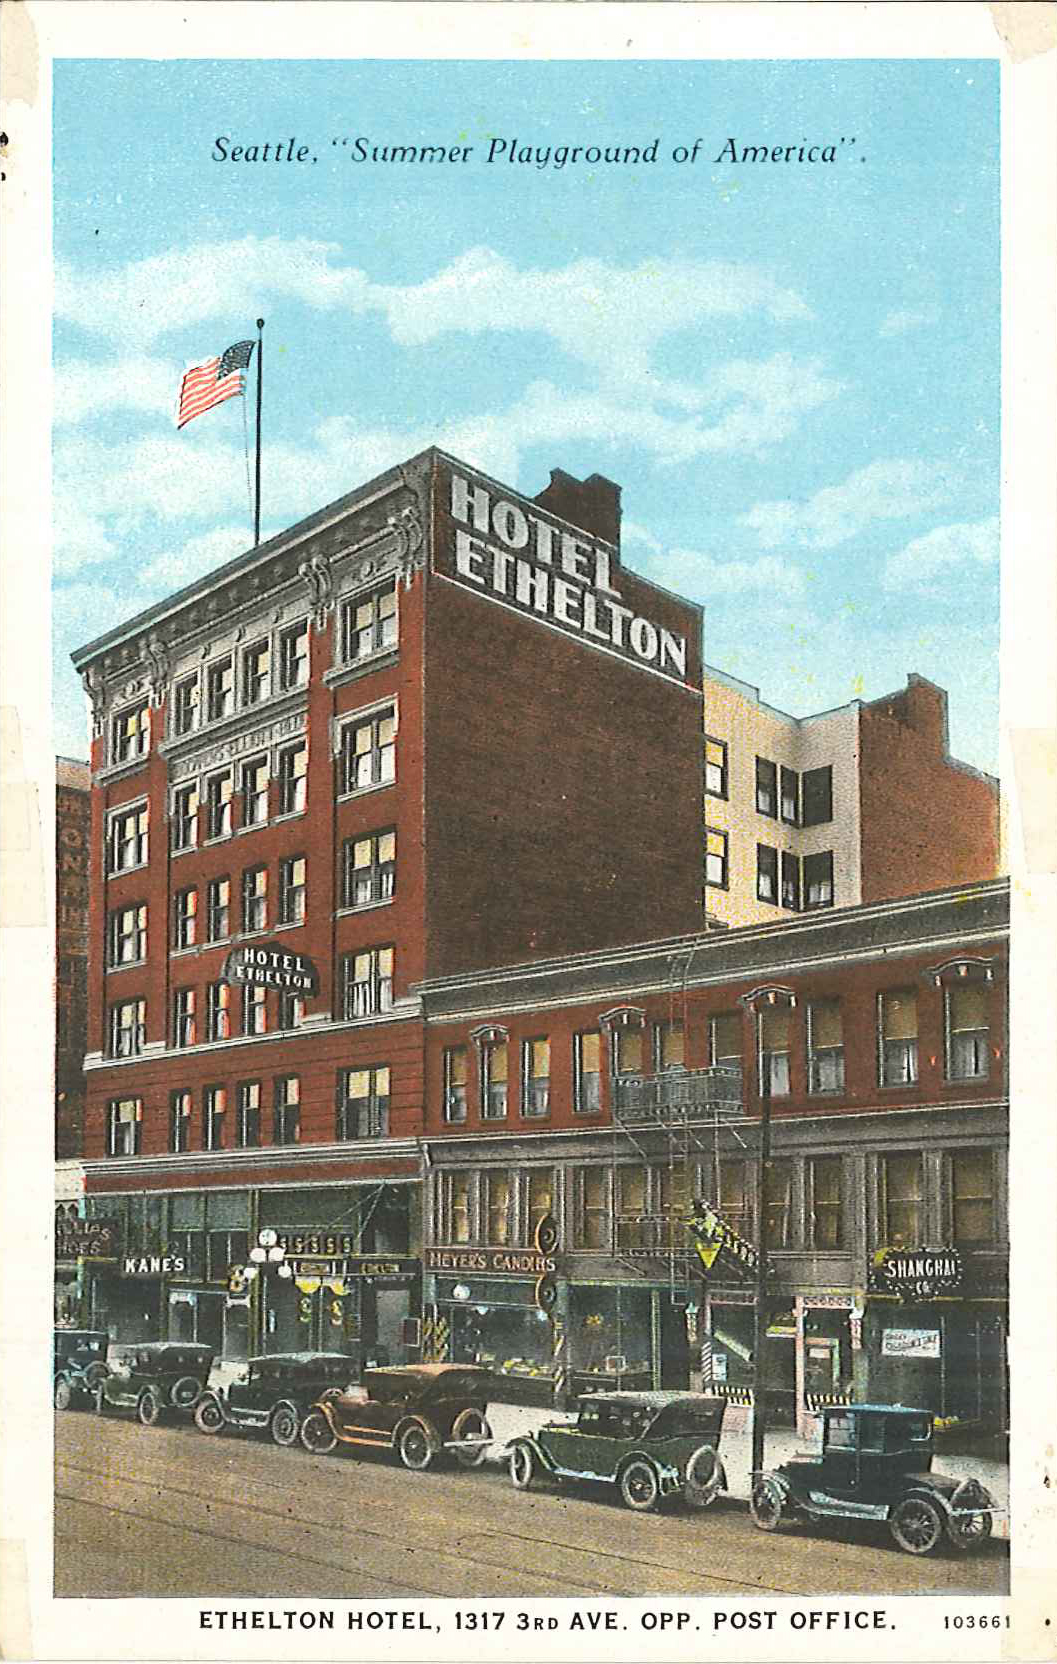 File:Ethelton Hotel, Seattle, Washington, circa 1920s.jpg ... on vancouver hotel map, seattle city map, federal way hotel map, seattle downtown apartments, renton hotel map, seattle seahawks map, bellingham hotel map, kent hotel map, totem lake hotel map, ballard hotel map, colorado springs airport hotel map, seattle downtown shopping, miami south beach hotel map,